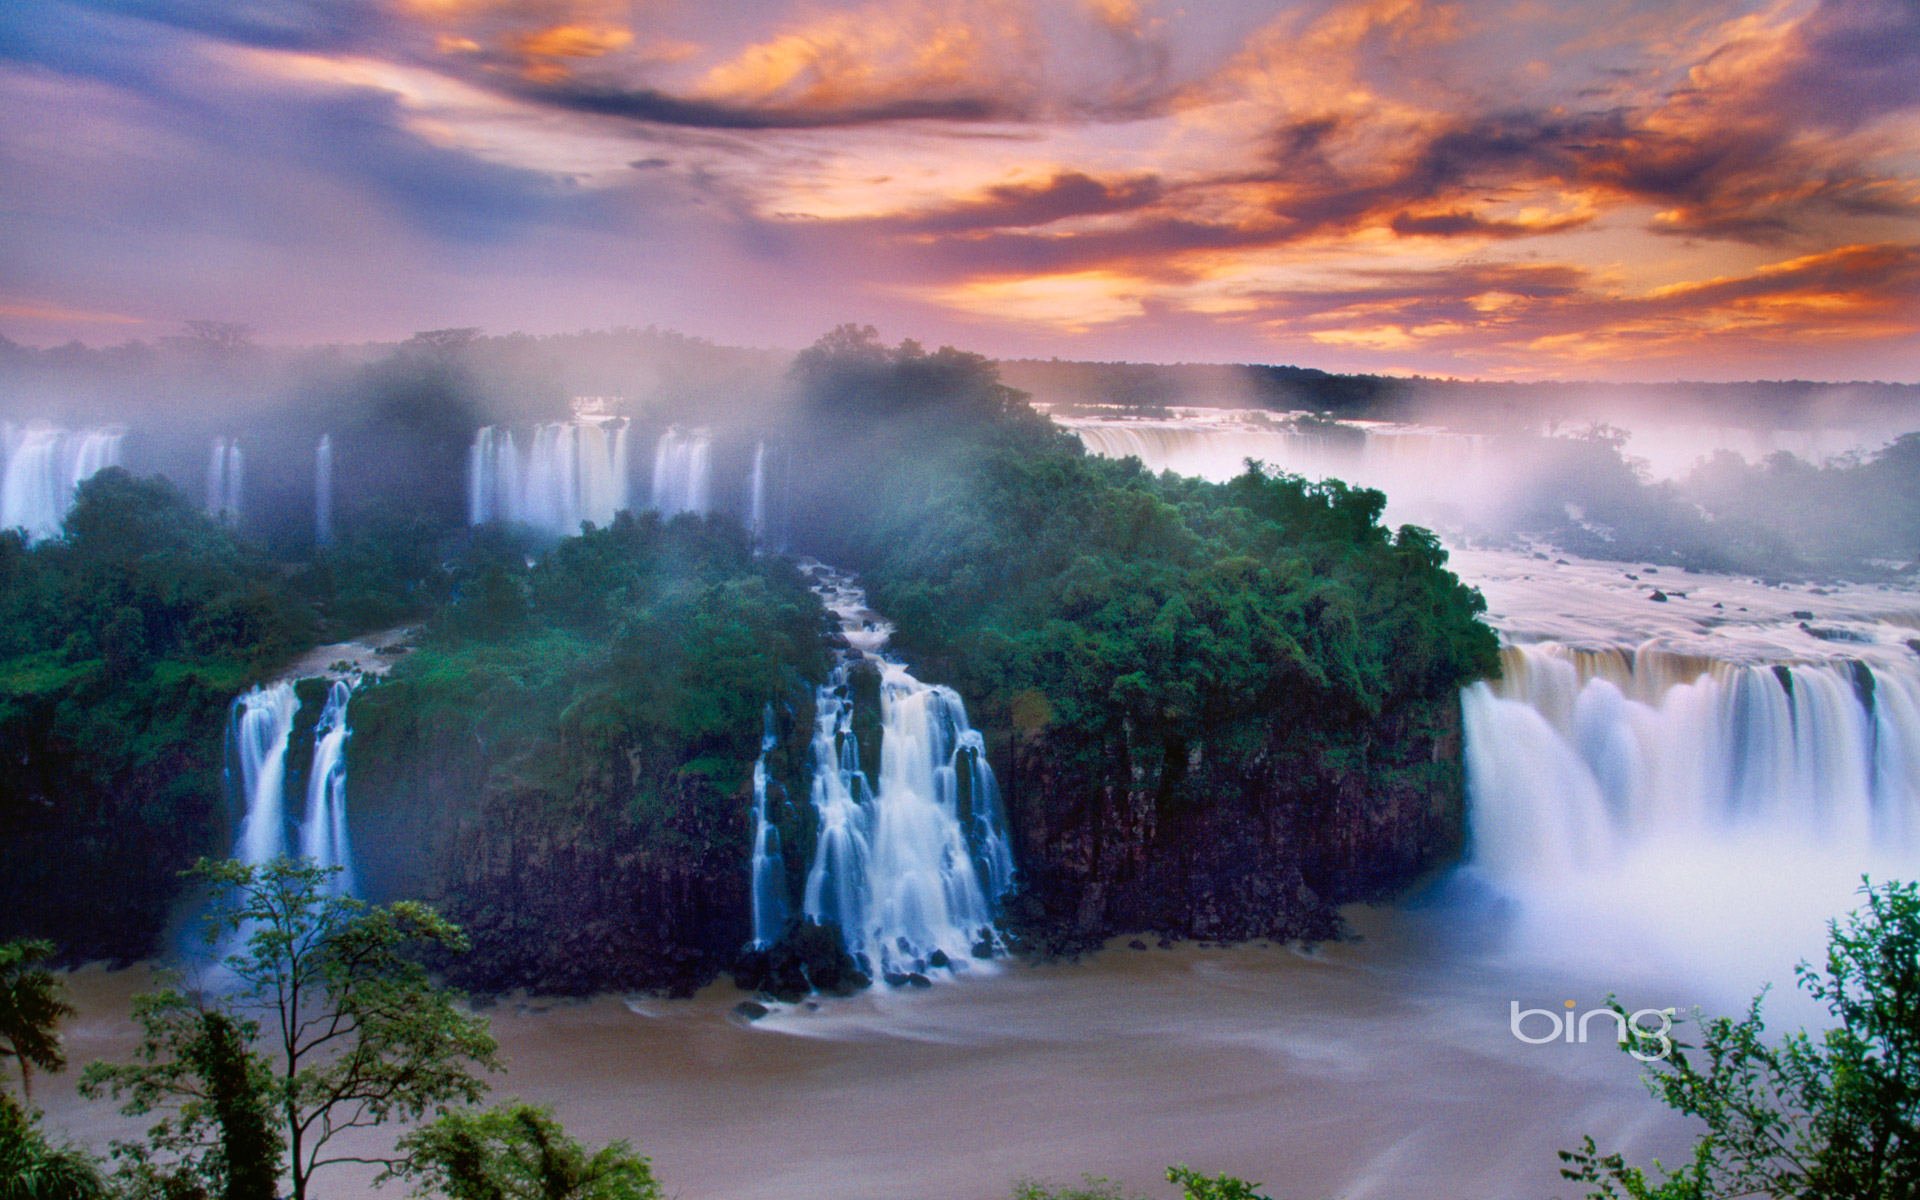 Bing backgrounds 5 11 February 2013   HQ Wallpapers   HQ Wallpapers 1920x1200